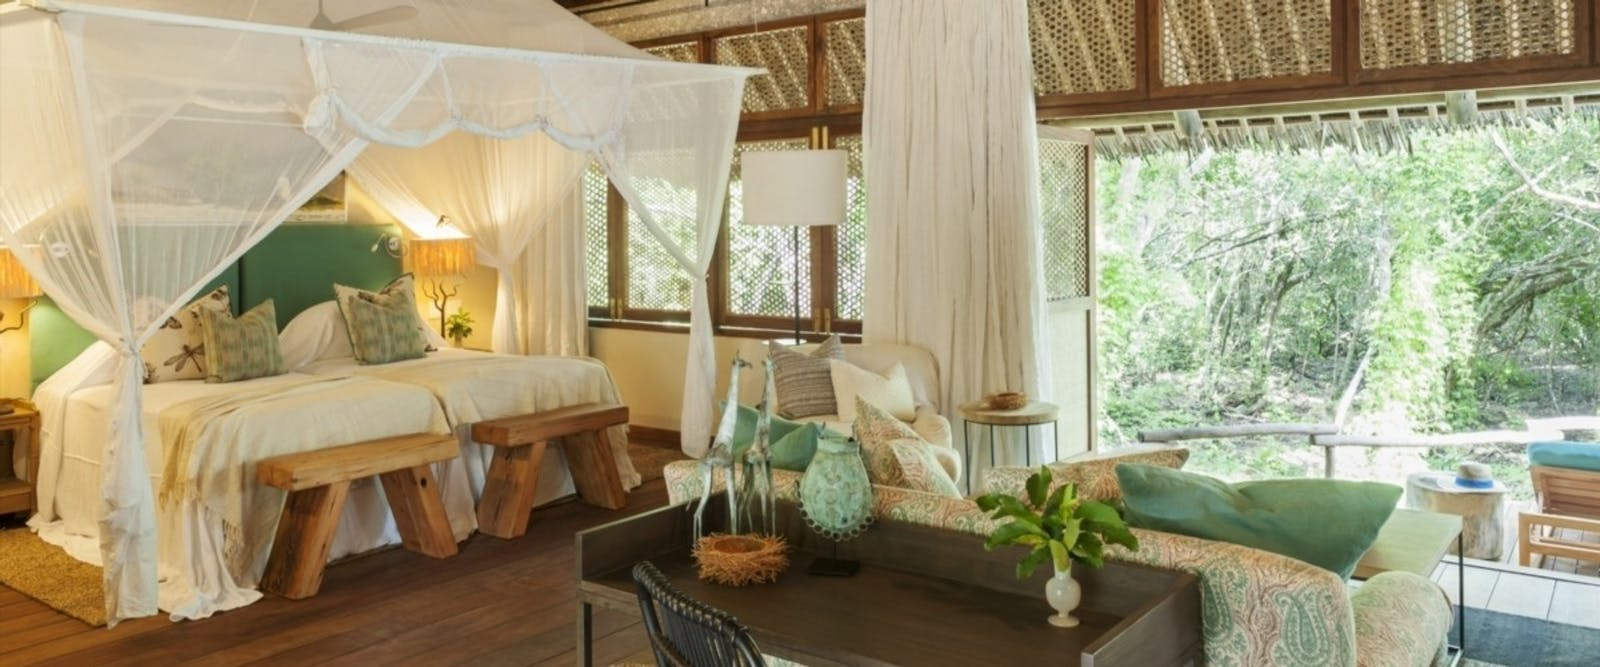 Bedroom in Papilio at Vamizi Island, Mozambique